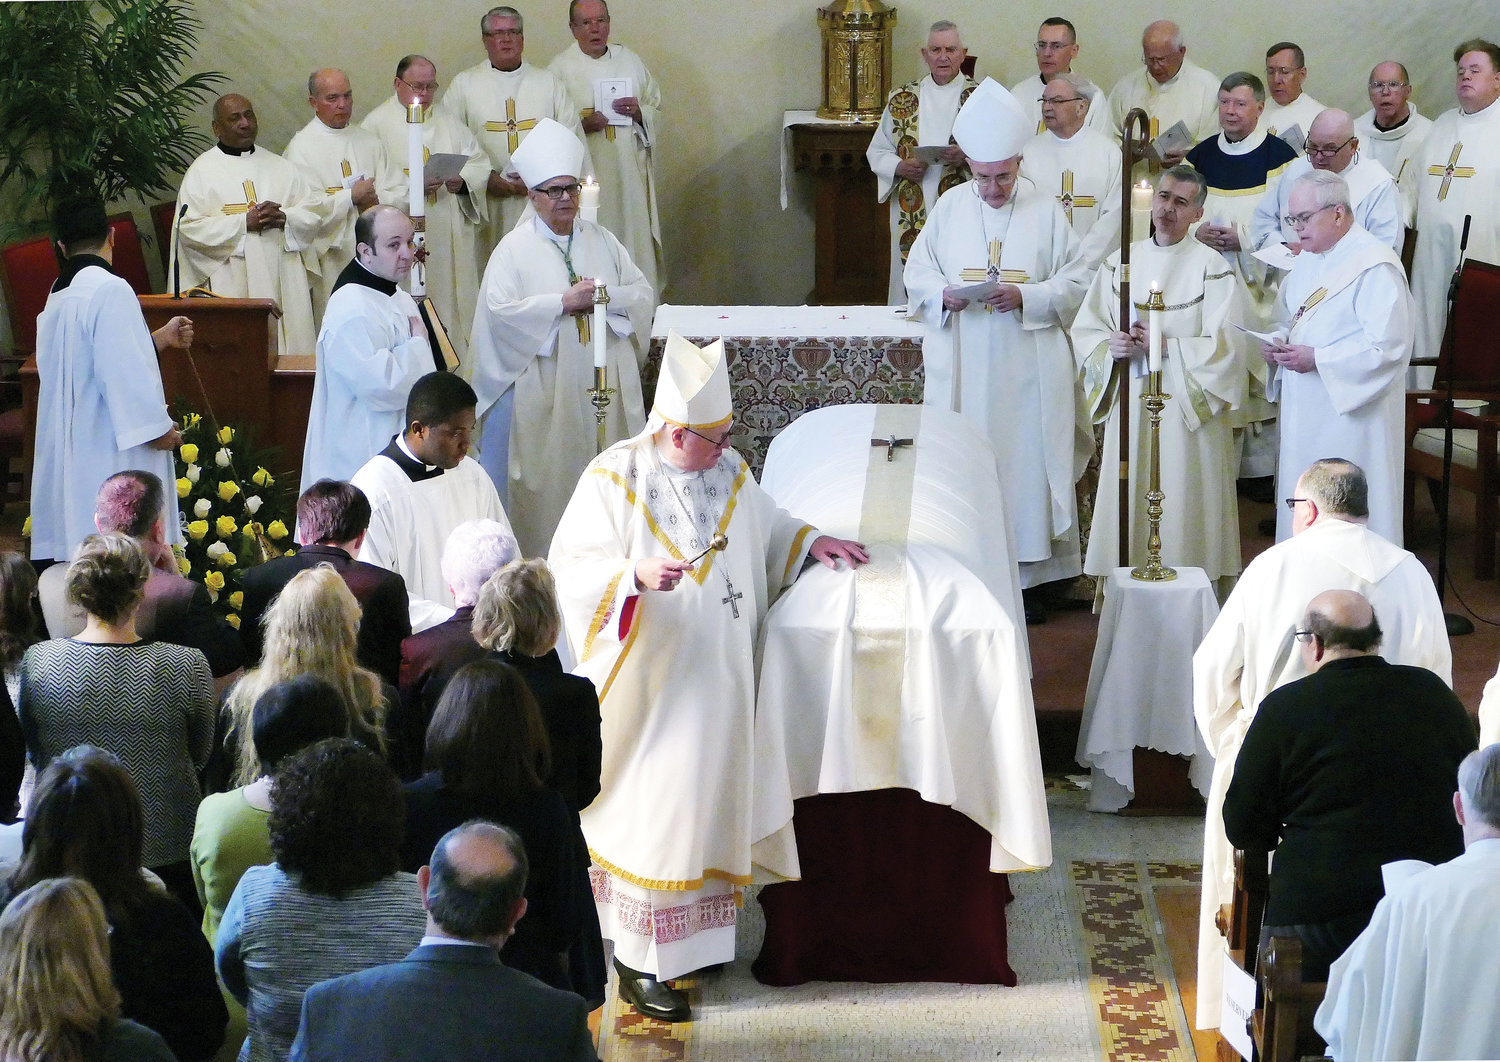 Cardinal Dolan blesses the casket of Retired Auxiliary Bishop Robert A. Brucato, who served as vicar general, chancellor and a pastor of the archdiocese, as well as a military chaplain. The cardinal celebrated the Funeral Mass on Veterans Day, Nov. 12, at the John Cardinal O'Connor Pavilion Chapel in the Riverdale section of the Bronx. Holding the cardinal's staff, is a nephew of Bishop Brucato, Deacon Anthony Bellitto Jr. of the Archdiocese of Philadelphia, who served as Deacon of the Eucharist and Deacon of the Word. Behind the cardinal, to his immediate left and right, are Retired Auxiliary Bishops Dominick Lagonegro and Gerald Walsh, who were principal concelebrants.